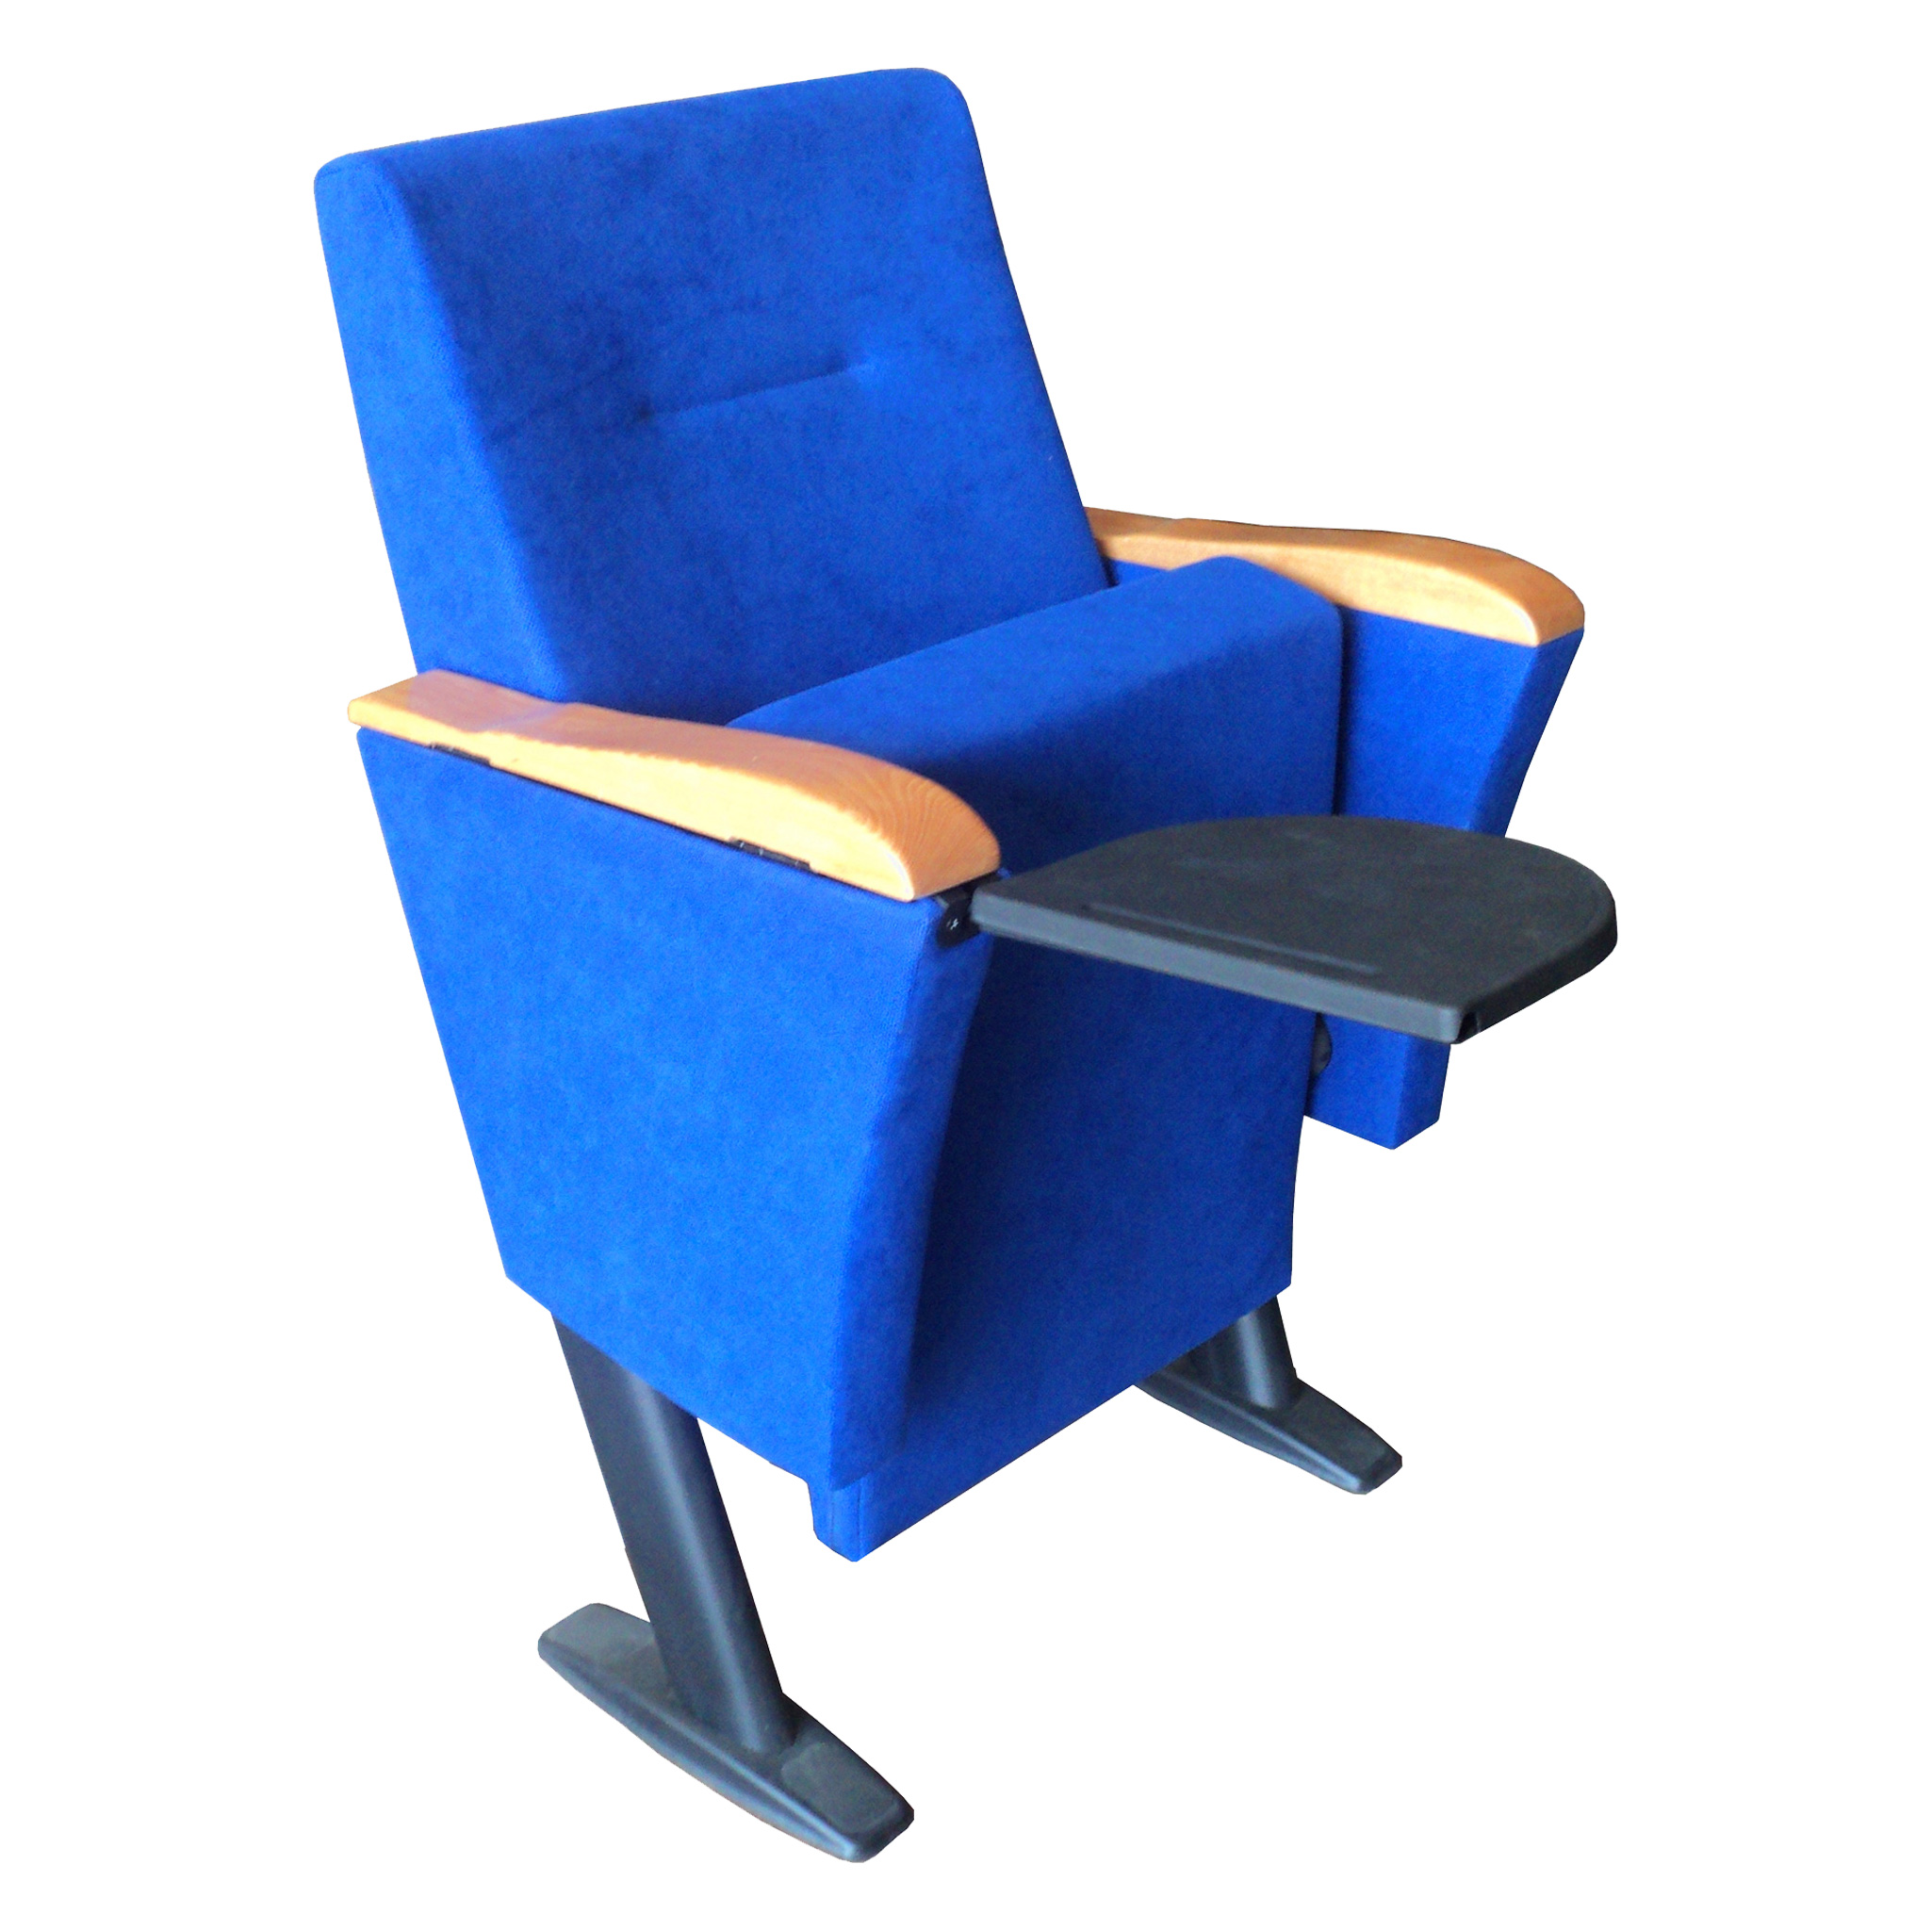 Akon Series – Y60-4 Model – Auditorium, Theater Chair – Dimensions, Price